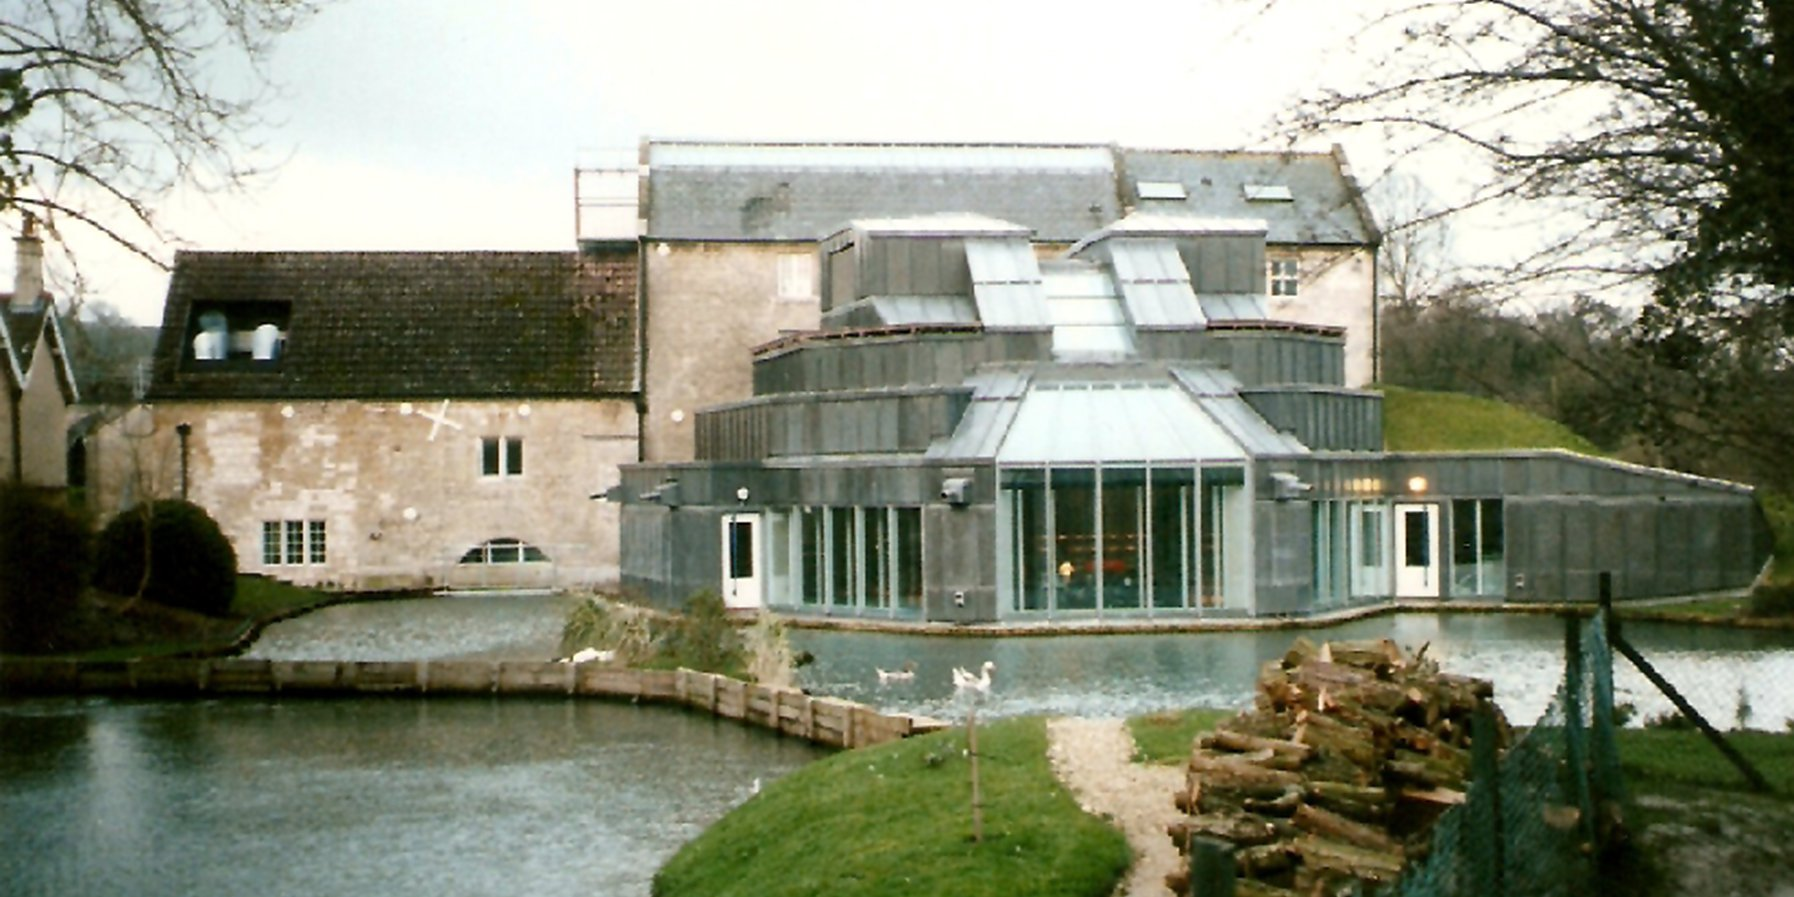 Real World Studios in England, Grafschaft Wiltshire